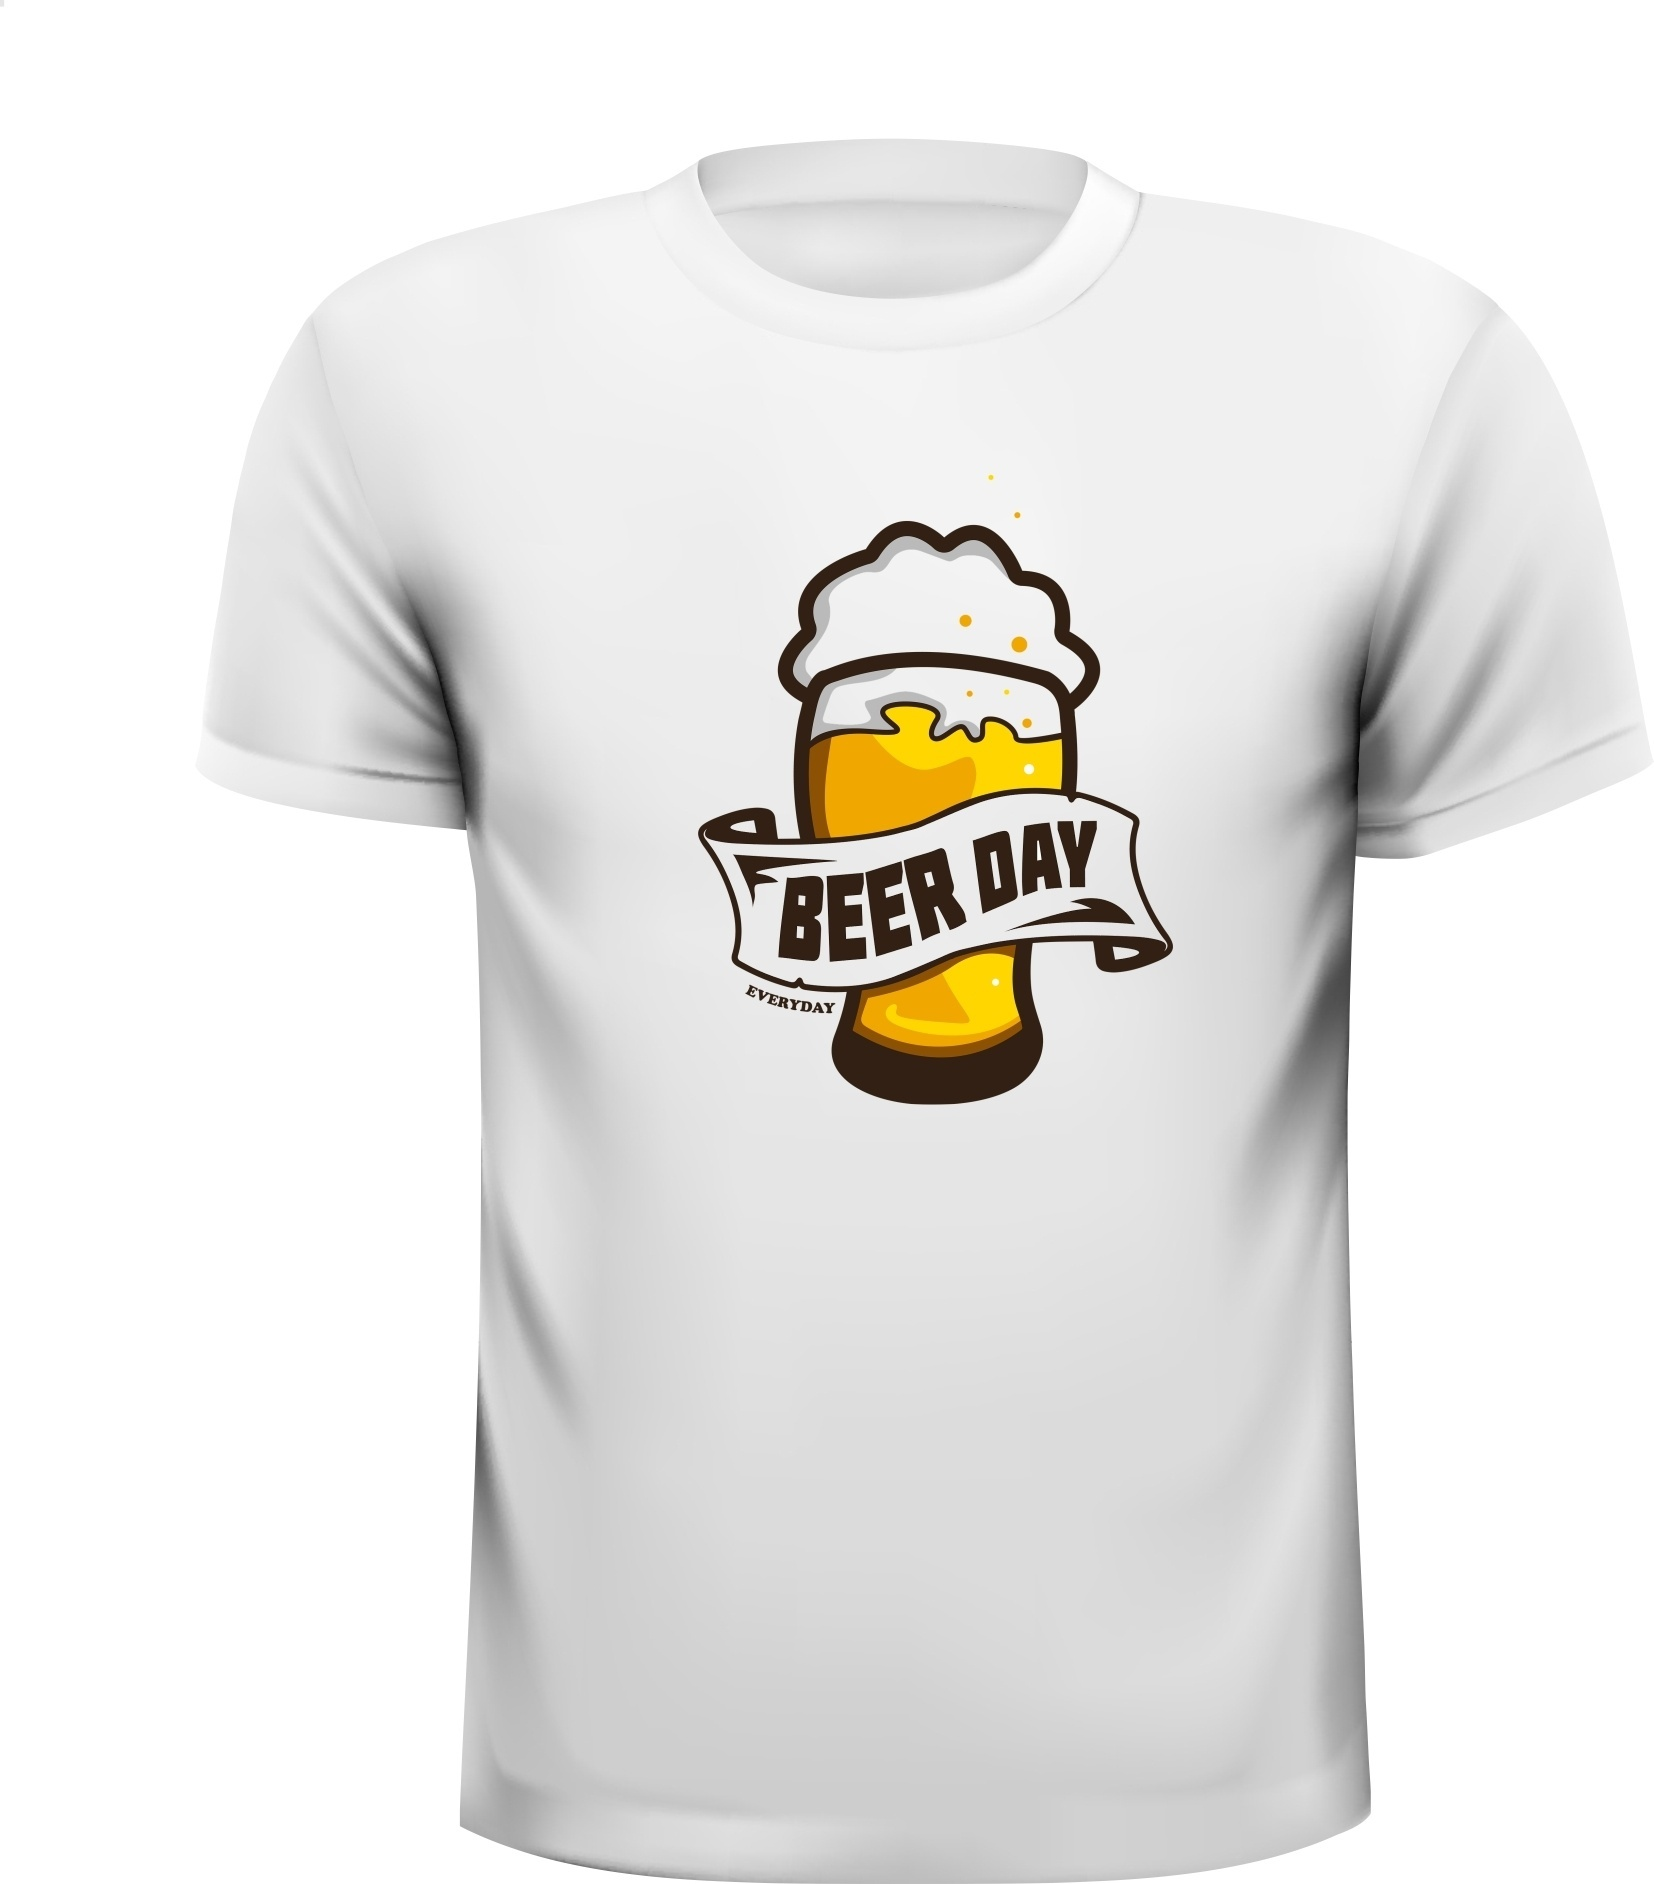 Beer day everyday bier elke dag T-shirt